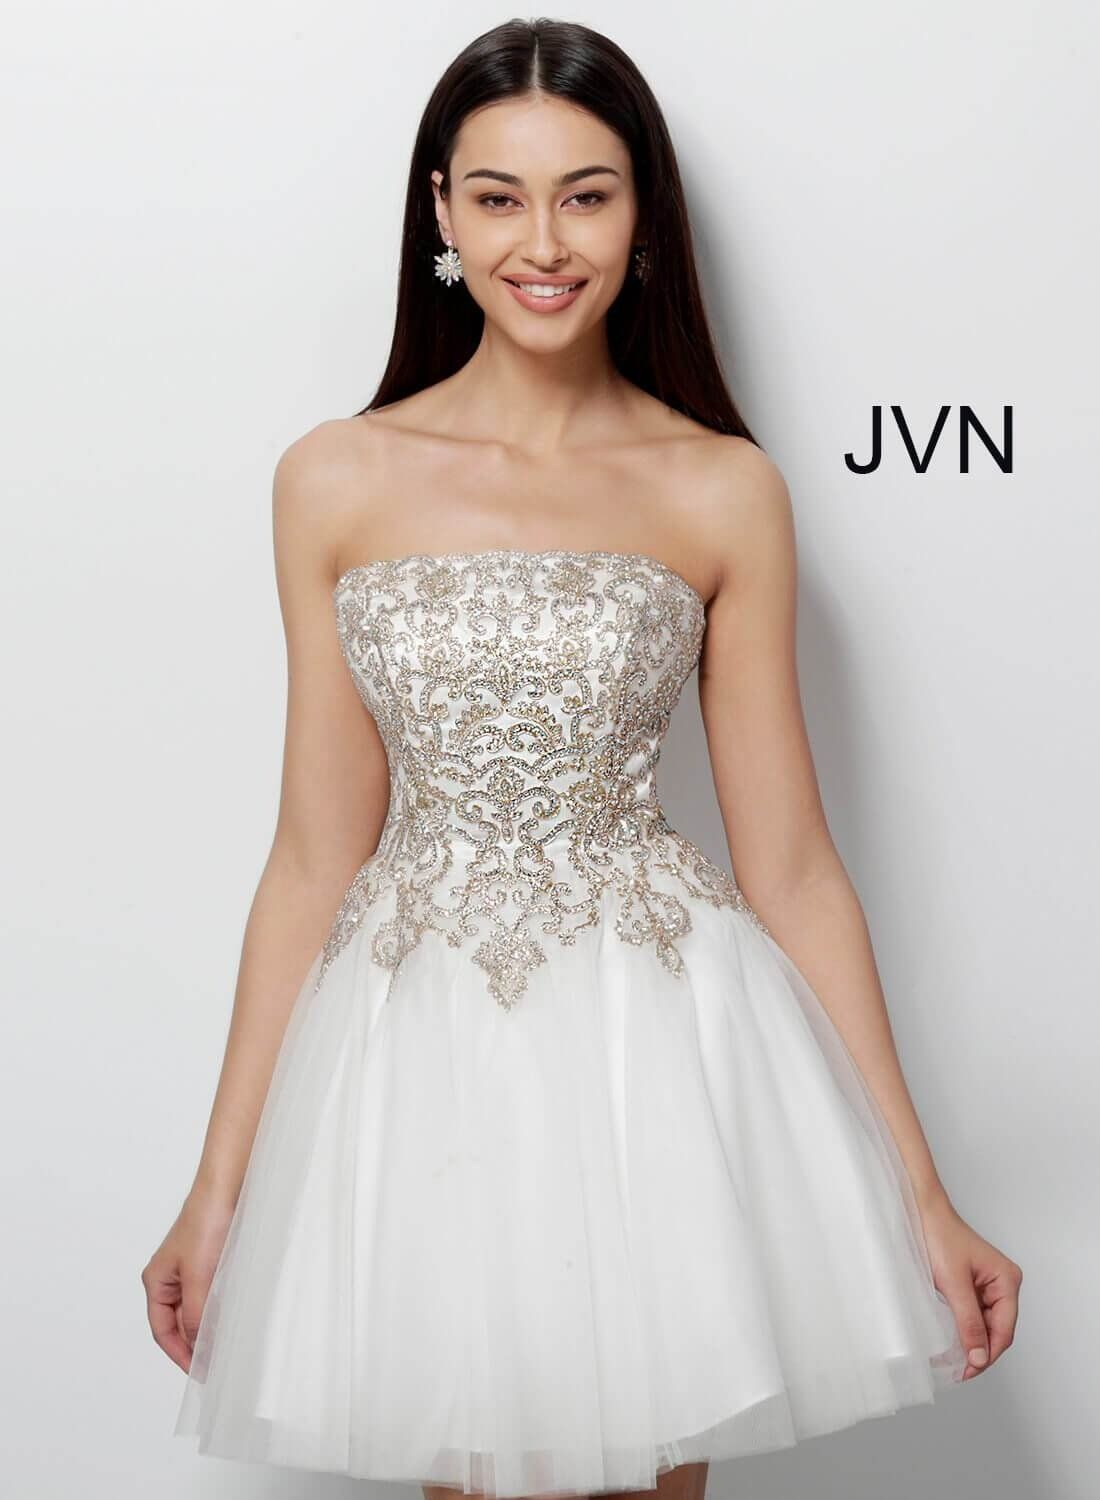 Jovani Jvn63635 Embroidered Short Fit And Flare Homecoming Dress Cocktail Dress Strapless Dresses Short Strapless Cocktail Dresses Jovani Dresses [ 1500 x 1100 Pixel ]